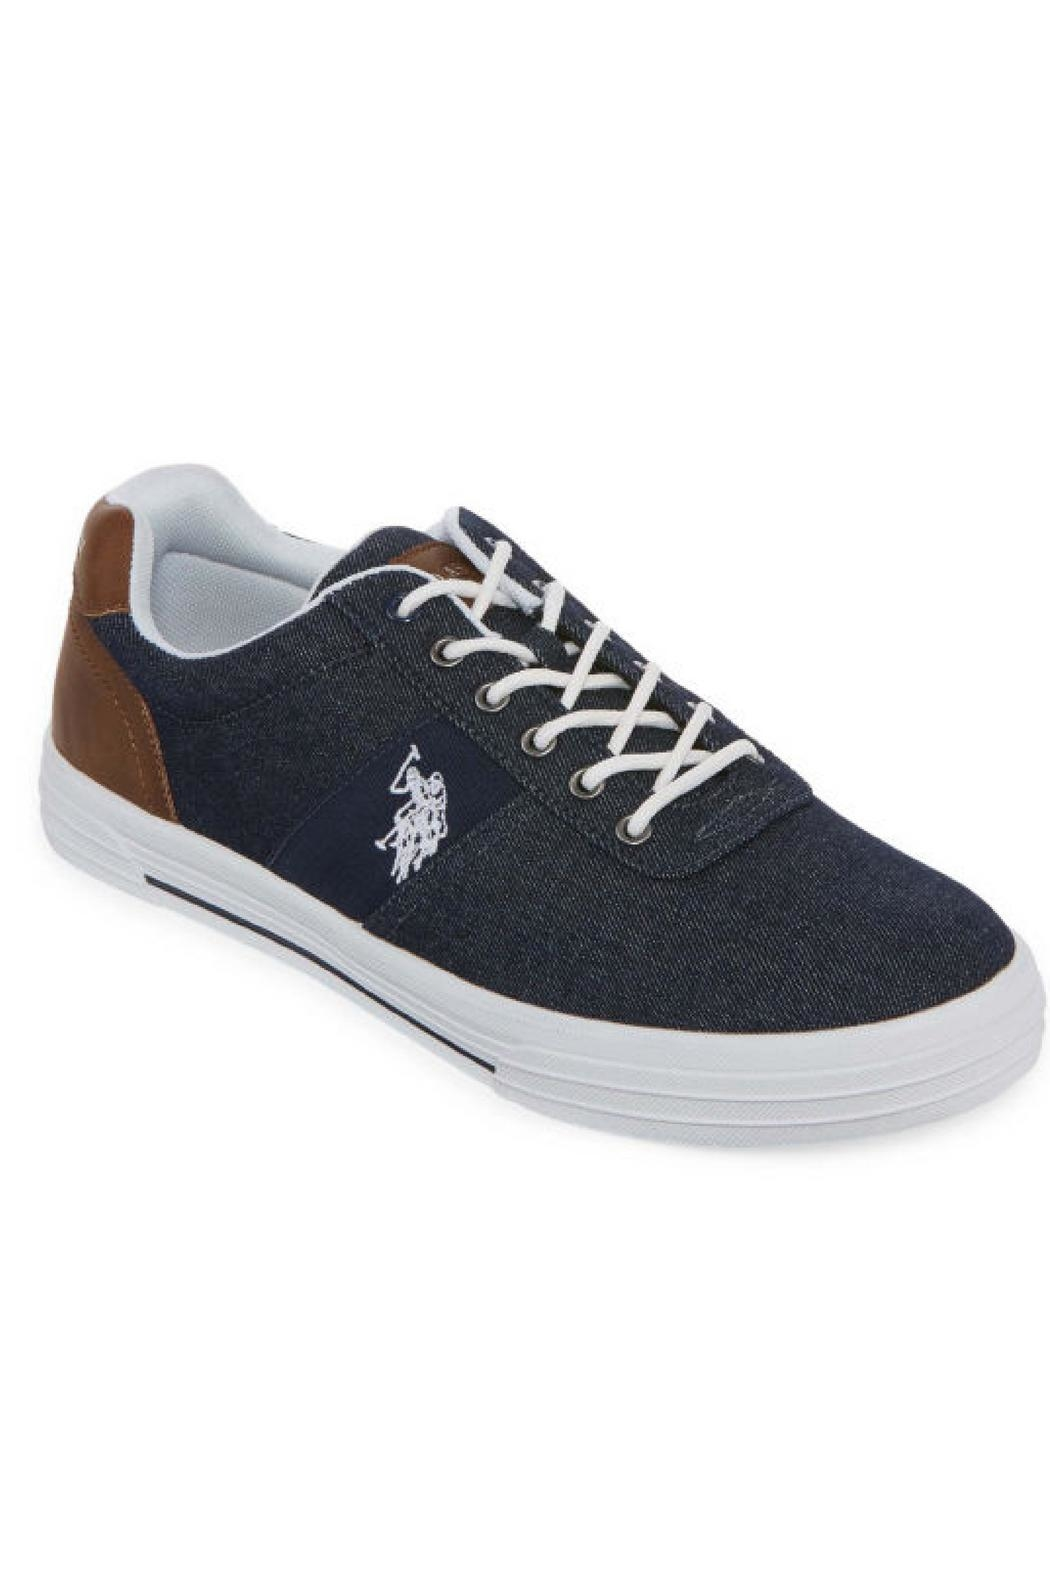 Beverly Hills Polo Club Helm Oxford Shoe - Main Image